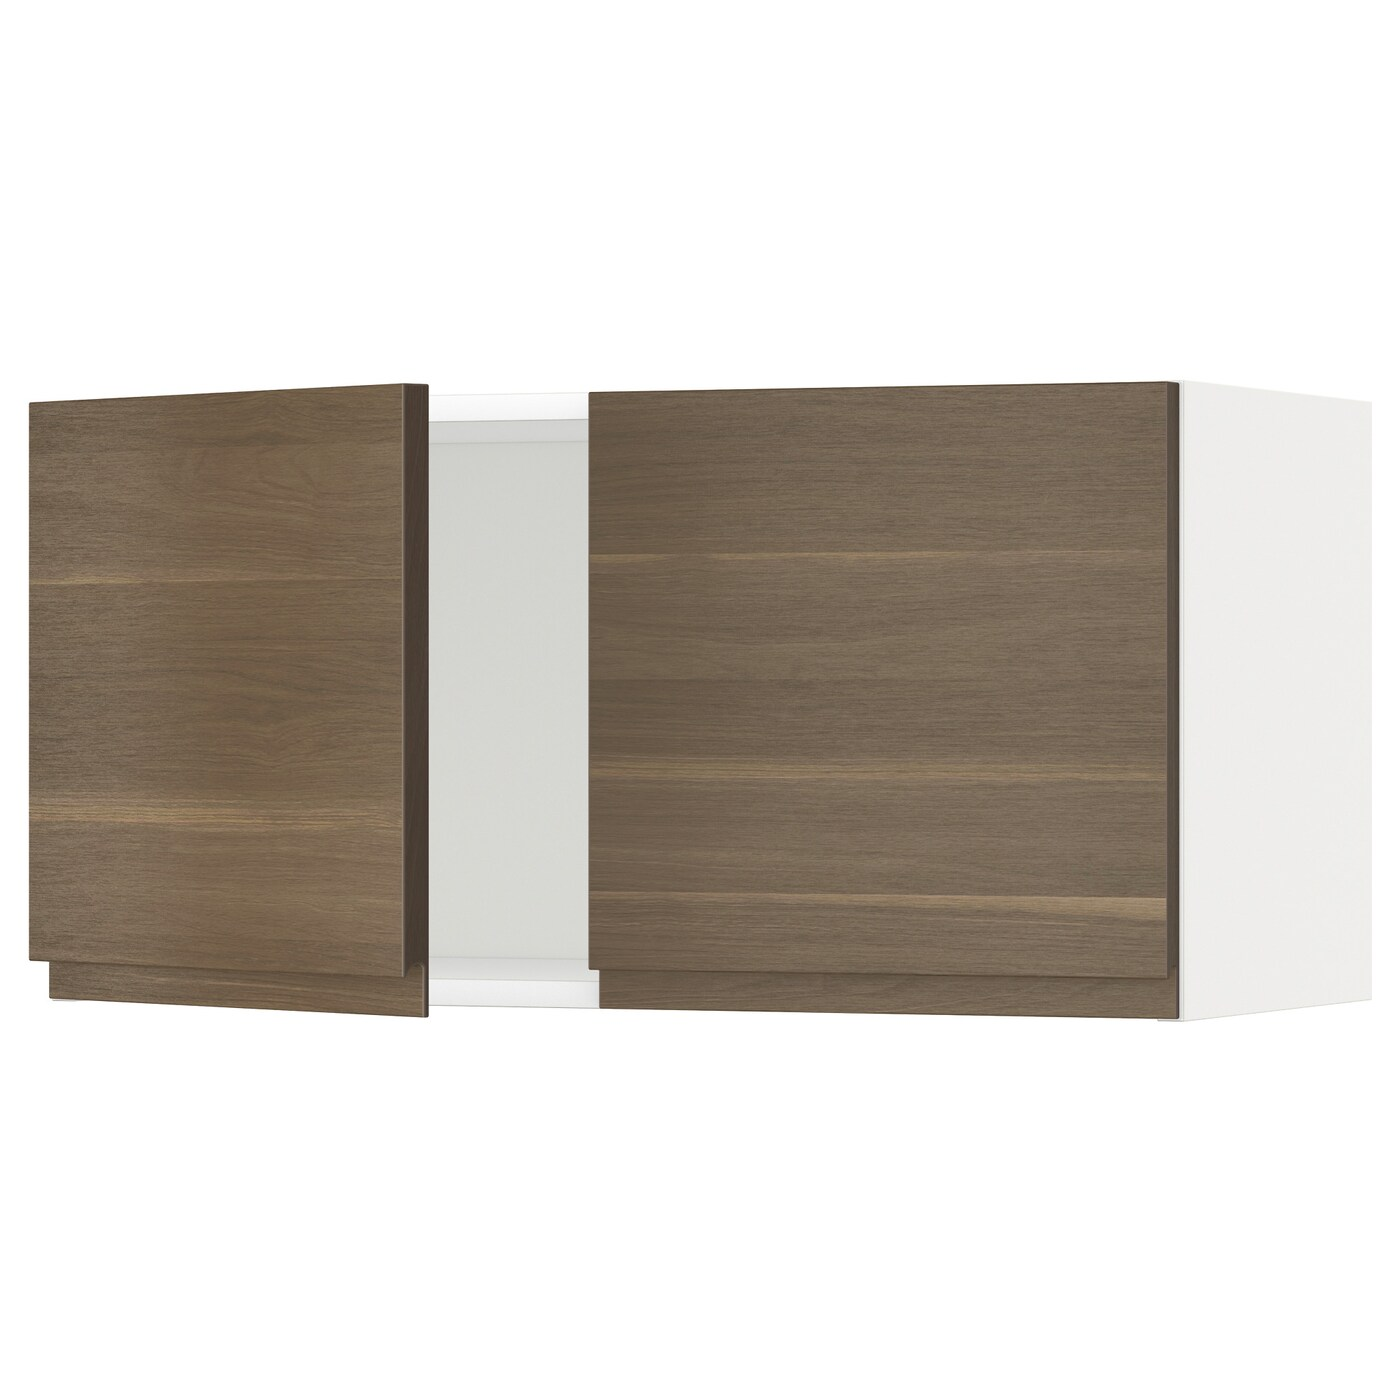 Metod Wall Cabinet With 2 Doors White Voxtorp High Gloss: METOD Wall Cabinet With 2 Doors White/voxtorp Walnut 80 X